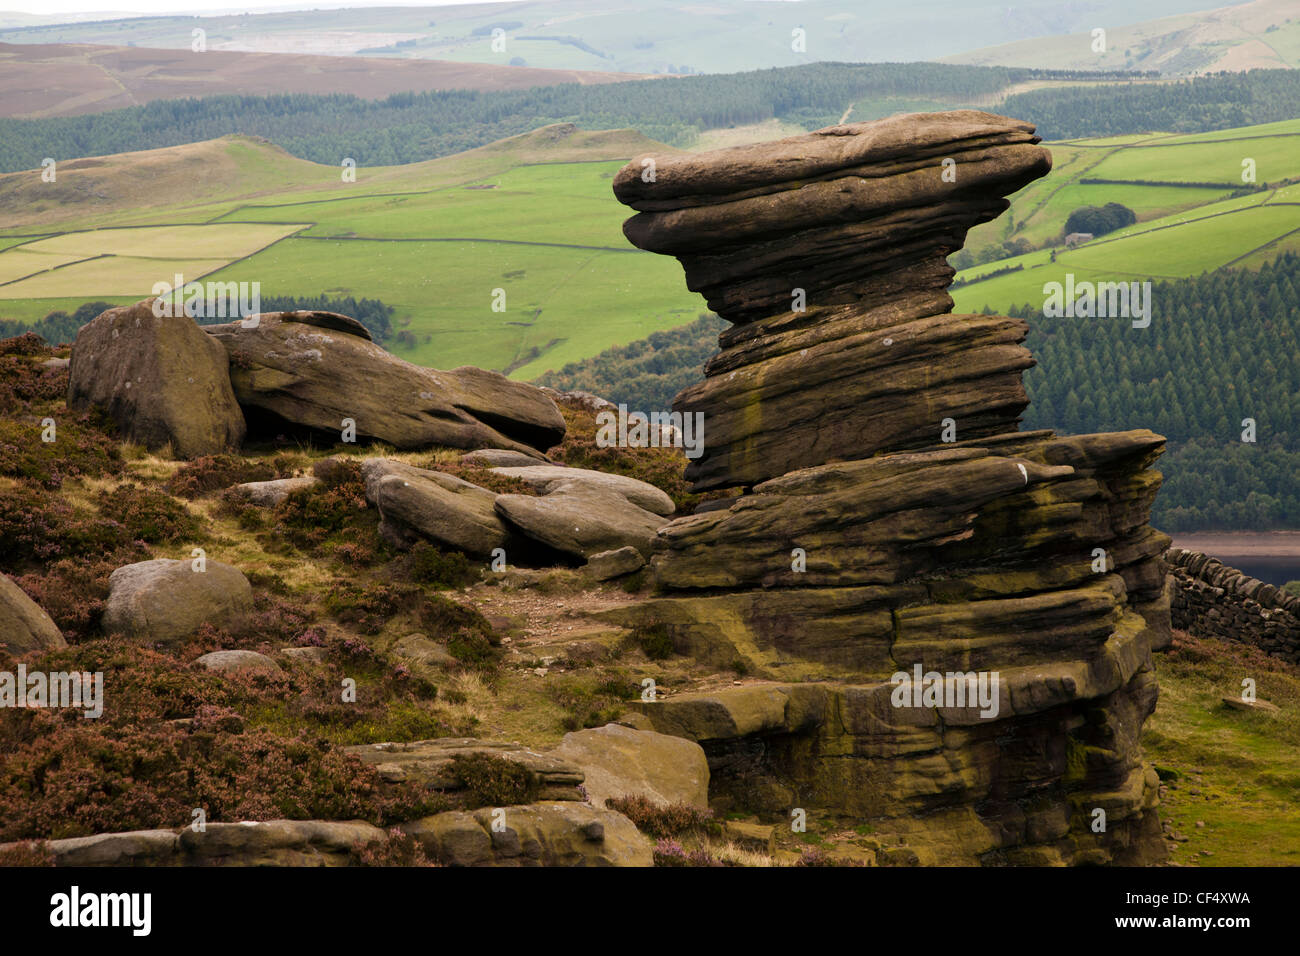 Rock formation near the Derwent and Ladybower reservoirs known as the Salt cellar Derbyshire Peak District England - Stock Image